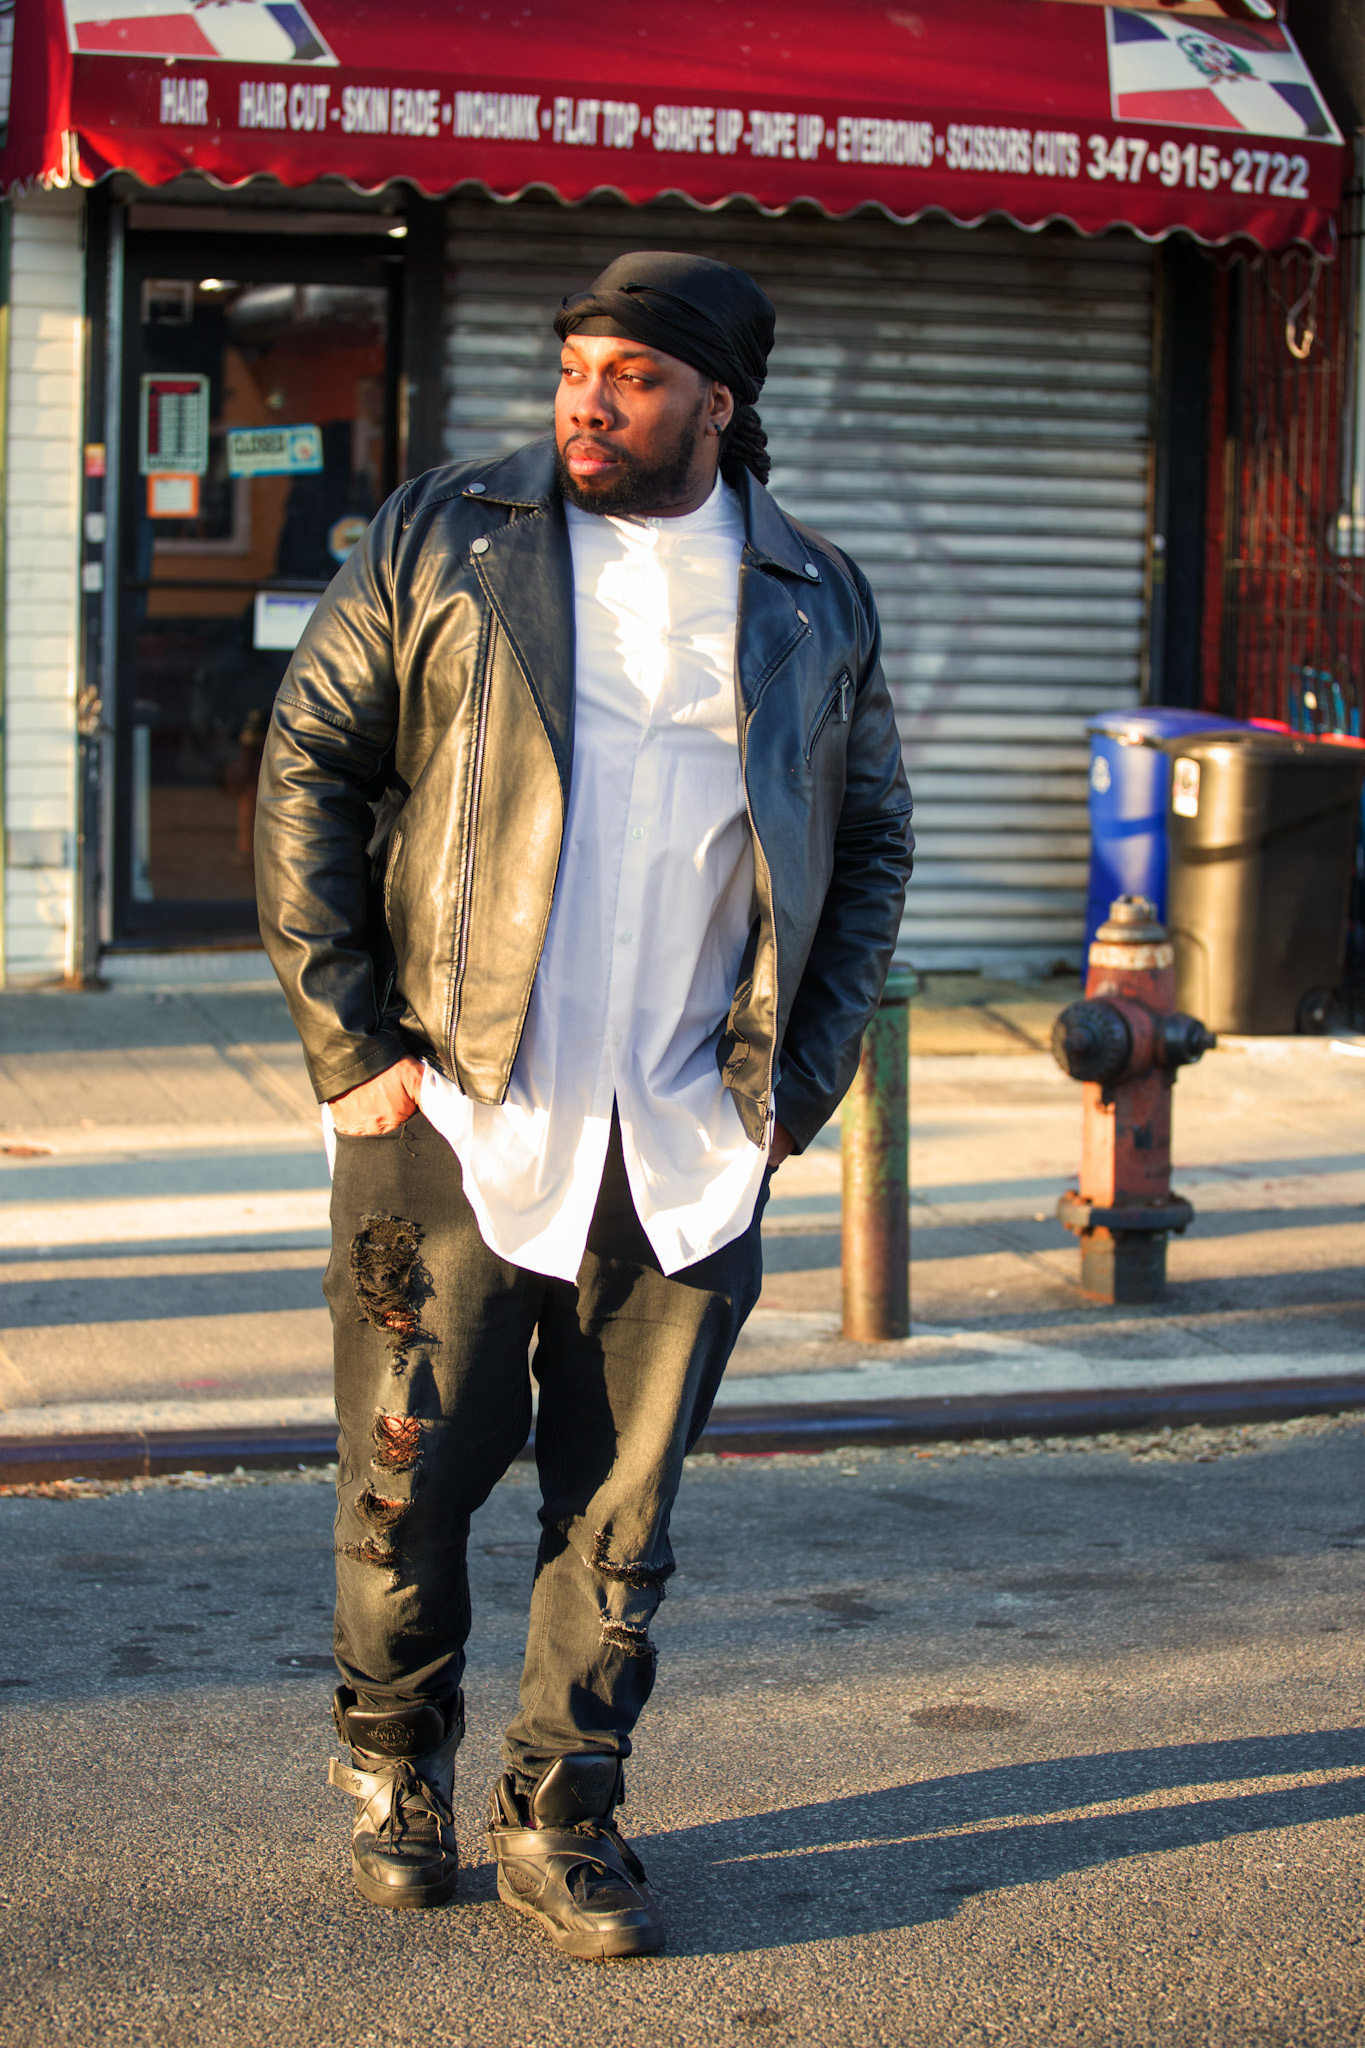 models, model, curves, plusmalemodel, brawnmodel, bigandtallmodel, plus male blogger, big and tall blogger, men of size, brawn blogger, big and tall model, plus male model, gentlemenscurb, kavah king, brawn model, big and tall, brawn, plus male, king, kavah, brooklyn, new york city, brawnfit, brawnfitness, brawnfashion, big and tall fashion, plus male fashion, gentlemen, curb, plusmalefashion, plus male model, brawn model, plus size influencer, influencer, plus male influencer, xlinfluencer, curvy, nyfw, newyorkfashionweek, Express, manofsize, menofsize, bigandtallfashion, bigandtallmodel, Boohoo, BoohooMAN